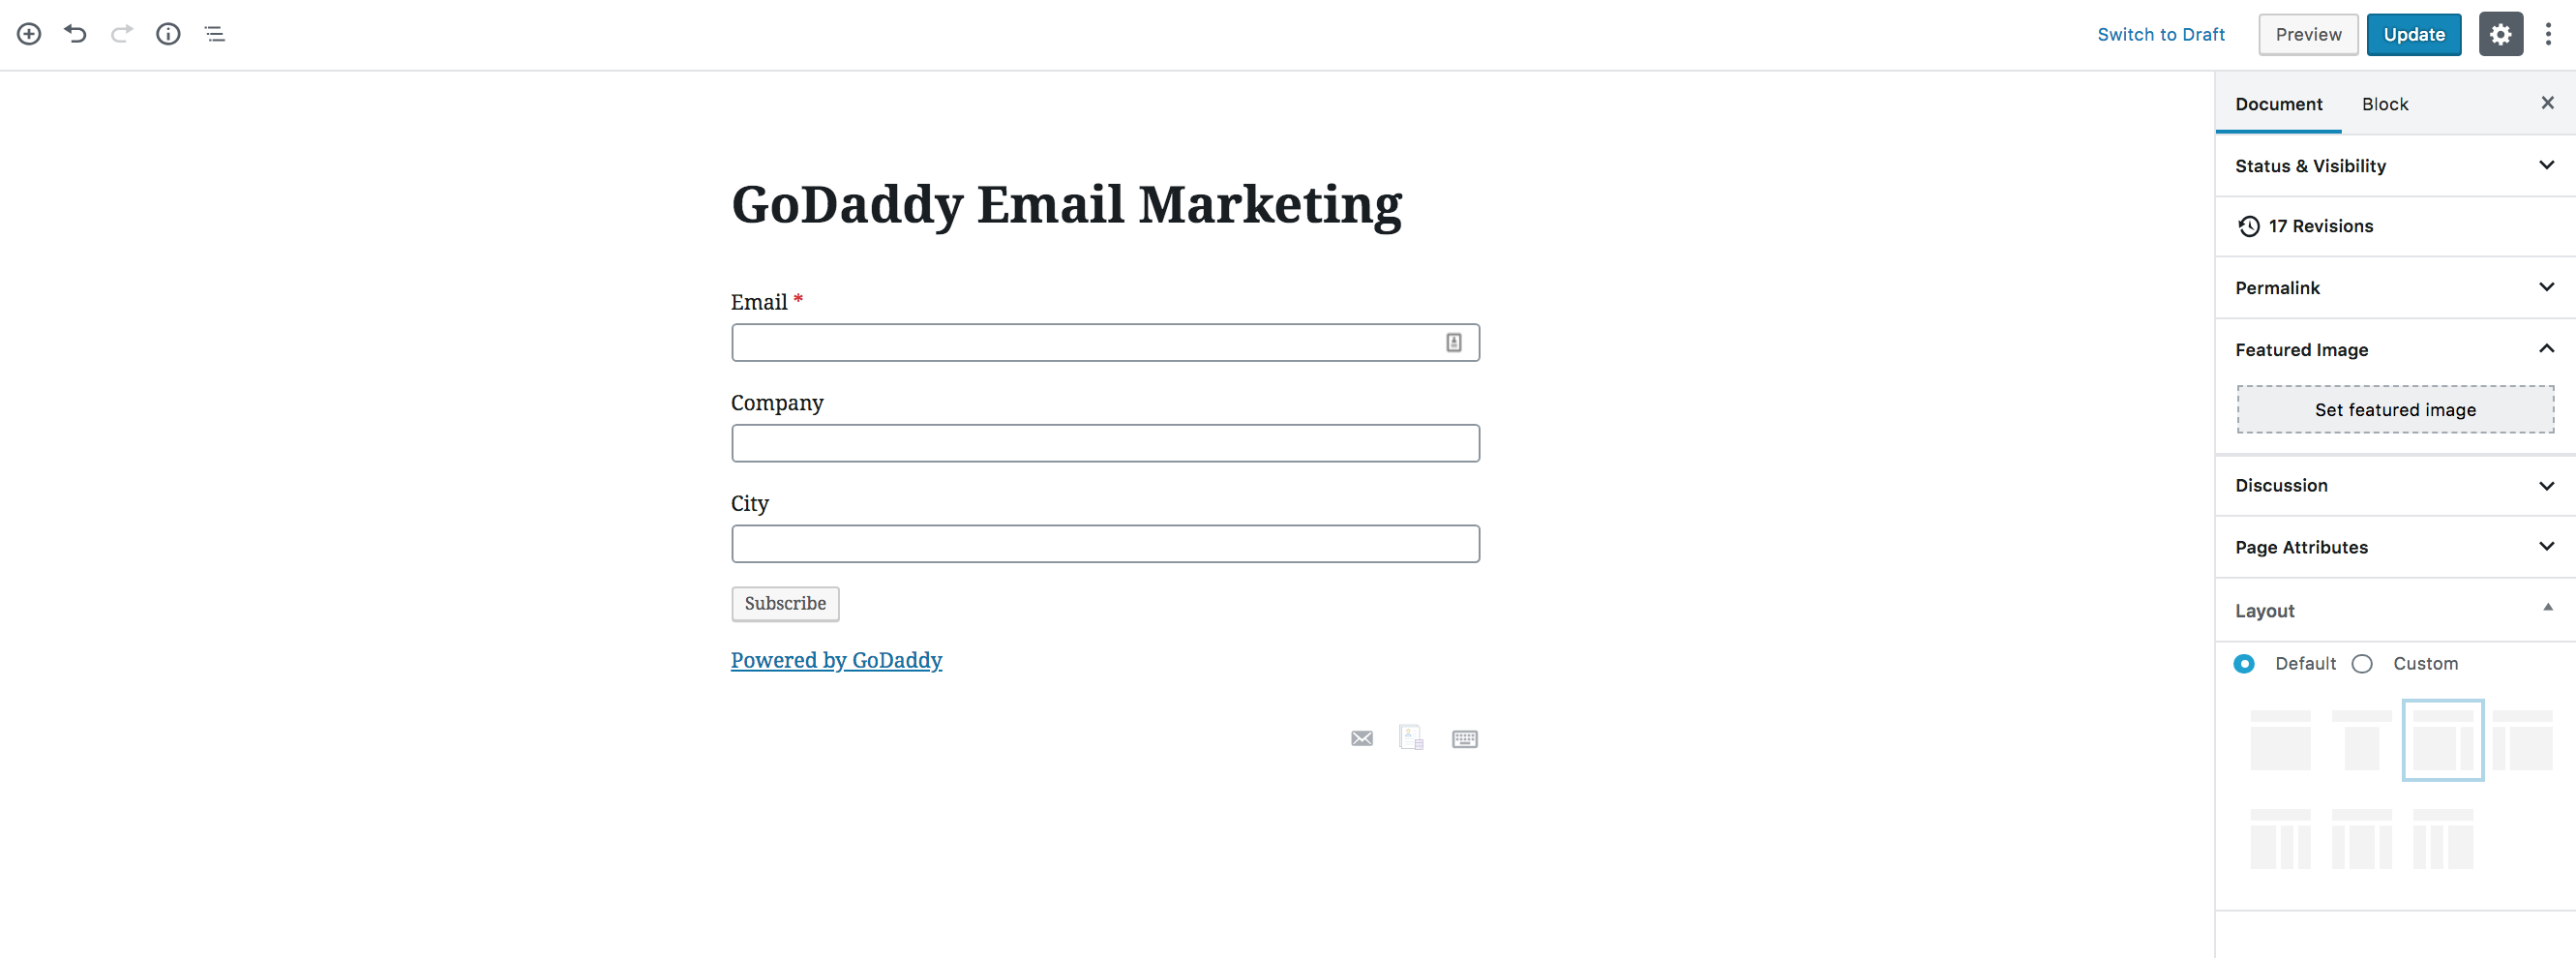 GoDaddy Email Marketing widget preview, in the block editor.